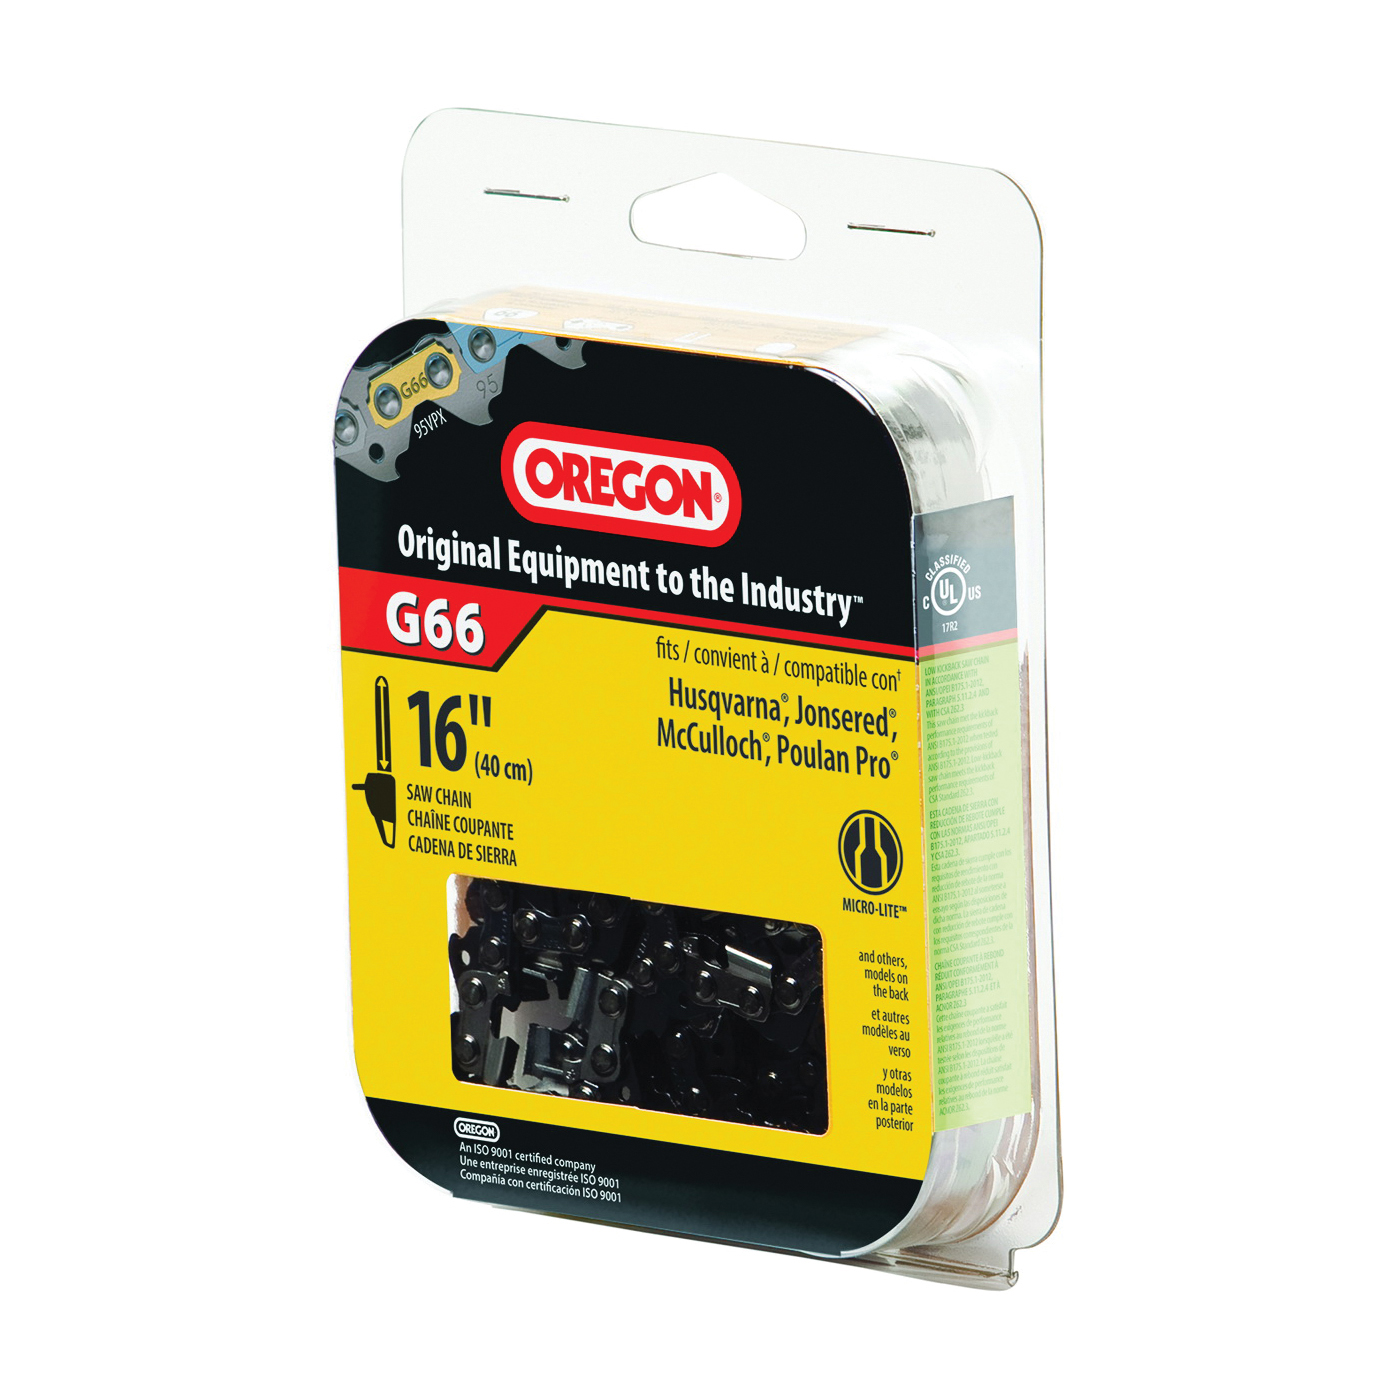 Picture of Oregon Micro-Lite M66 Chainsaw Chain, 16 in L Bar, 0.05 Gauge, 0.325 in TPI/Pitch, 66 -Link